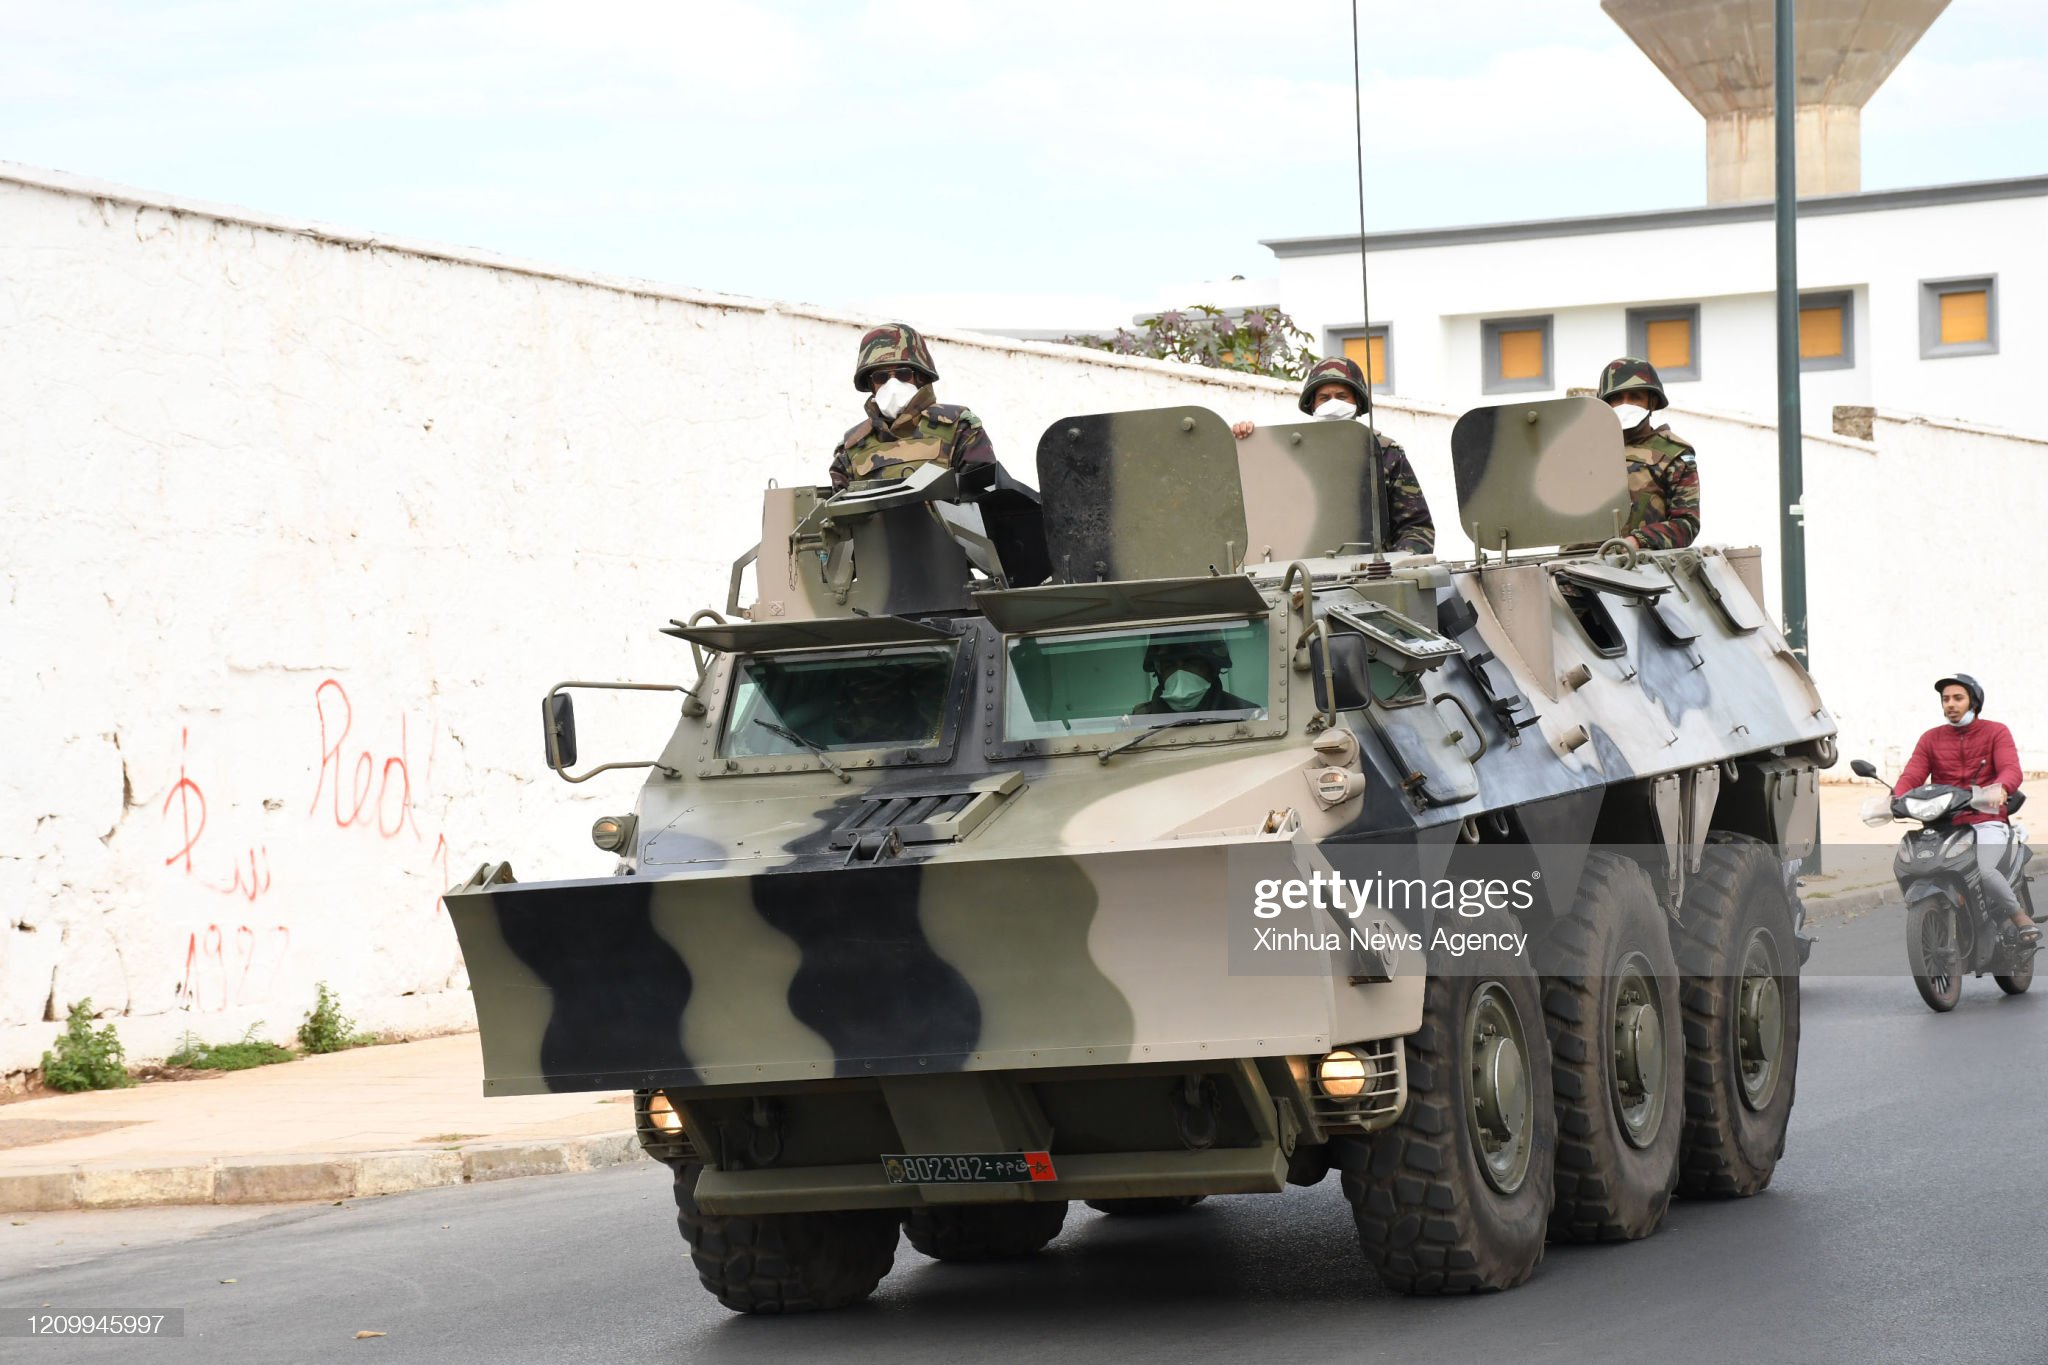 Renault VAB VTT et VCI des Forces Armées Royales - Page 3 April-14-2020-soldiers-wearing-masks-are-seen-on-a-military-vehicle-picture-id1209945997?s=2048x2048